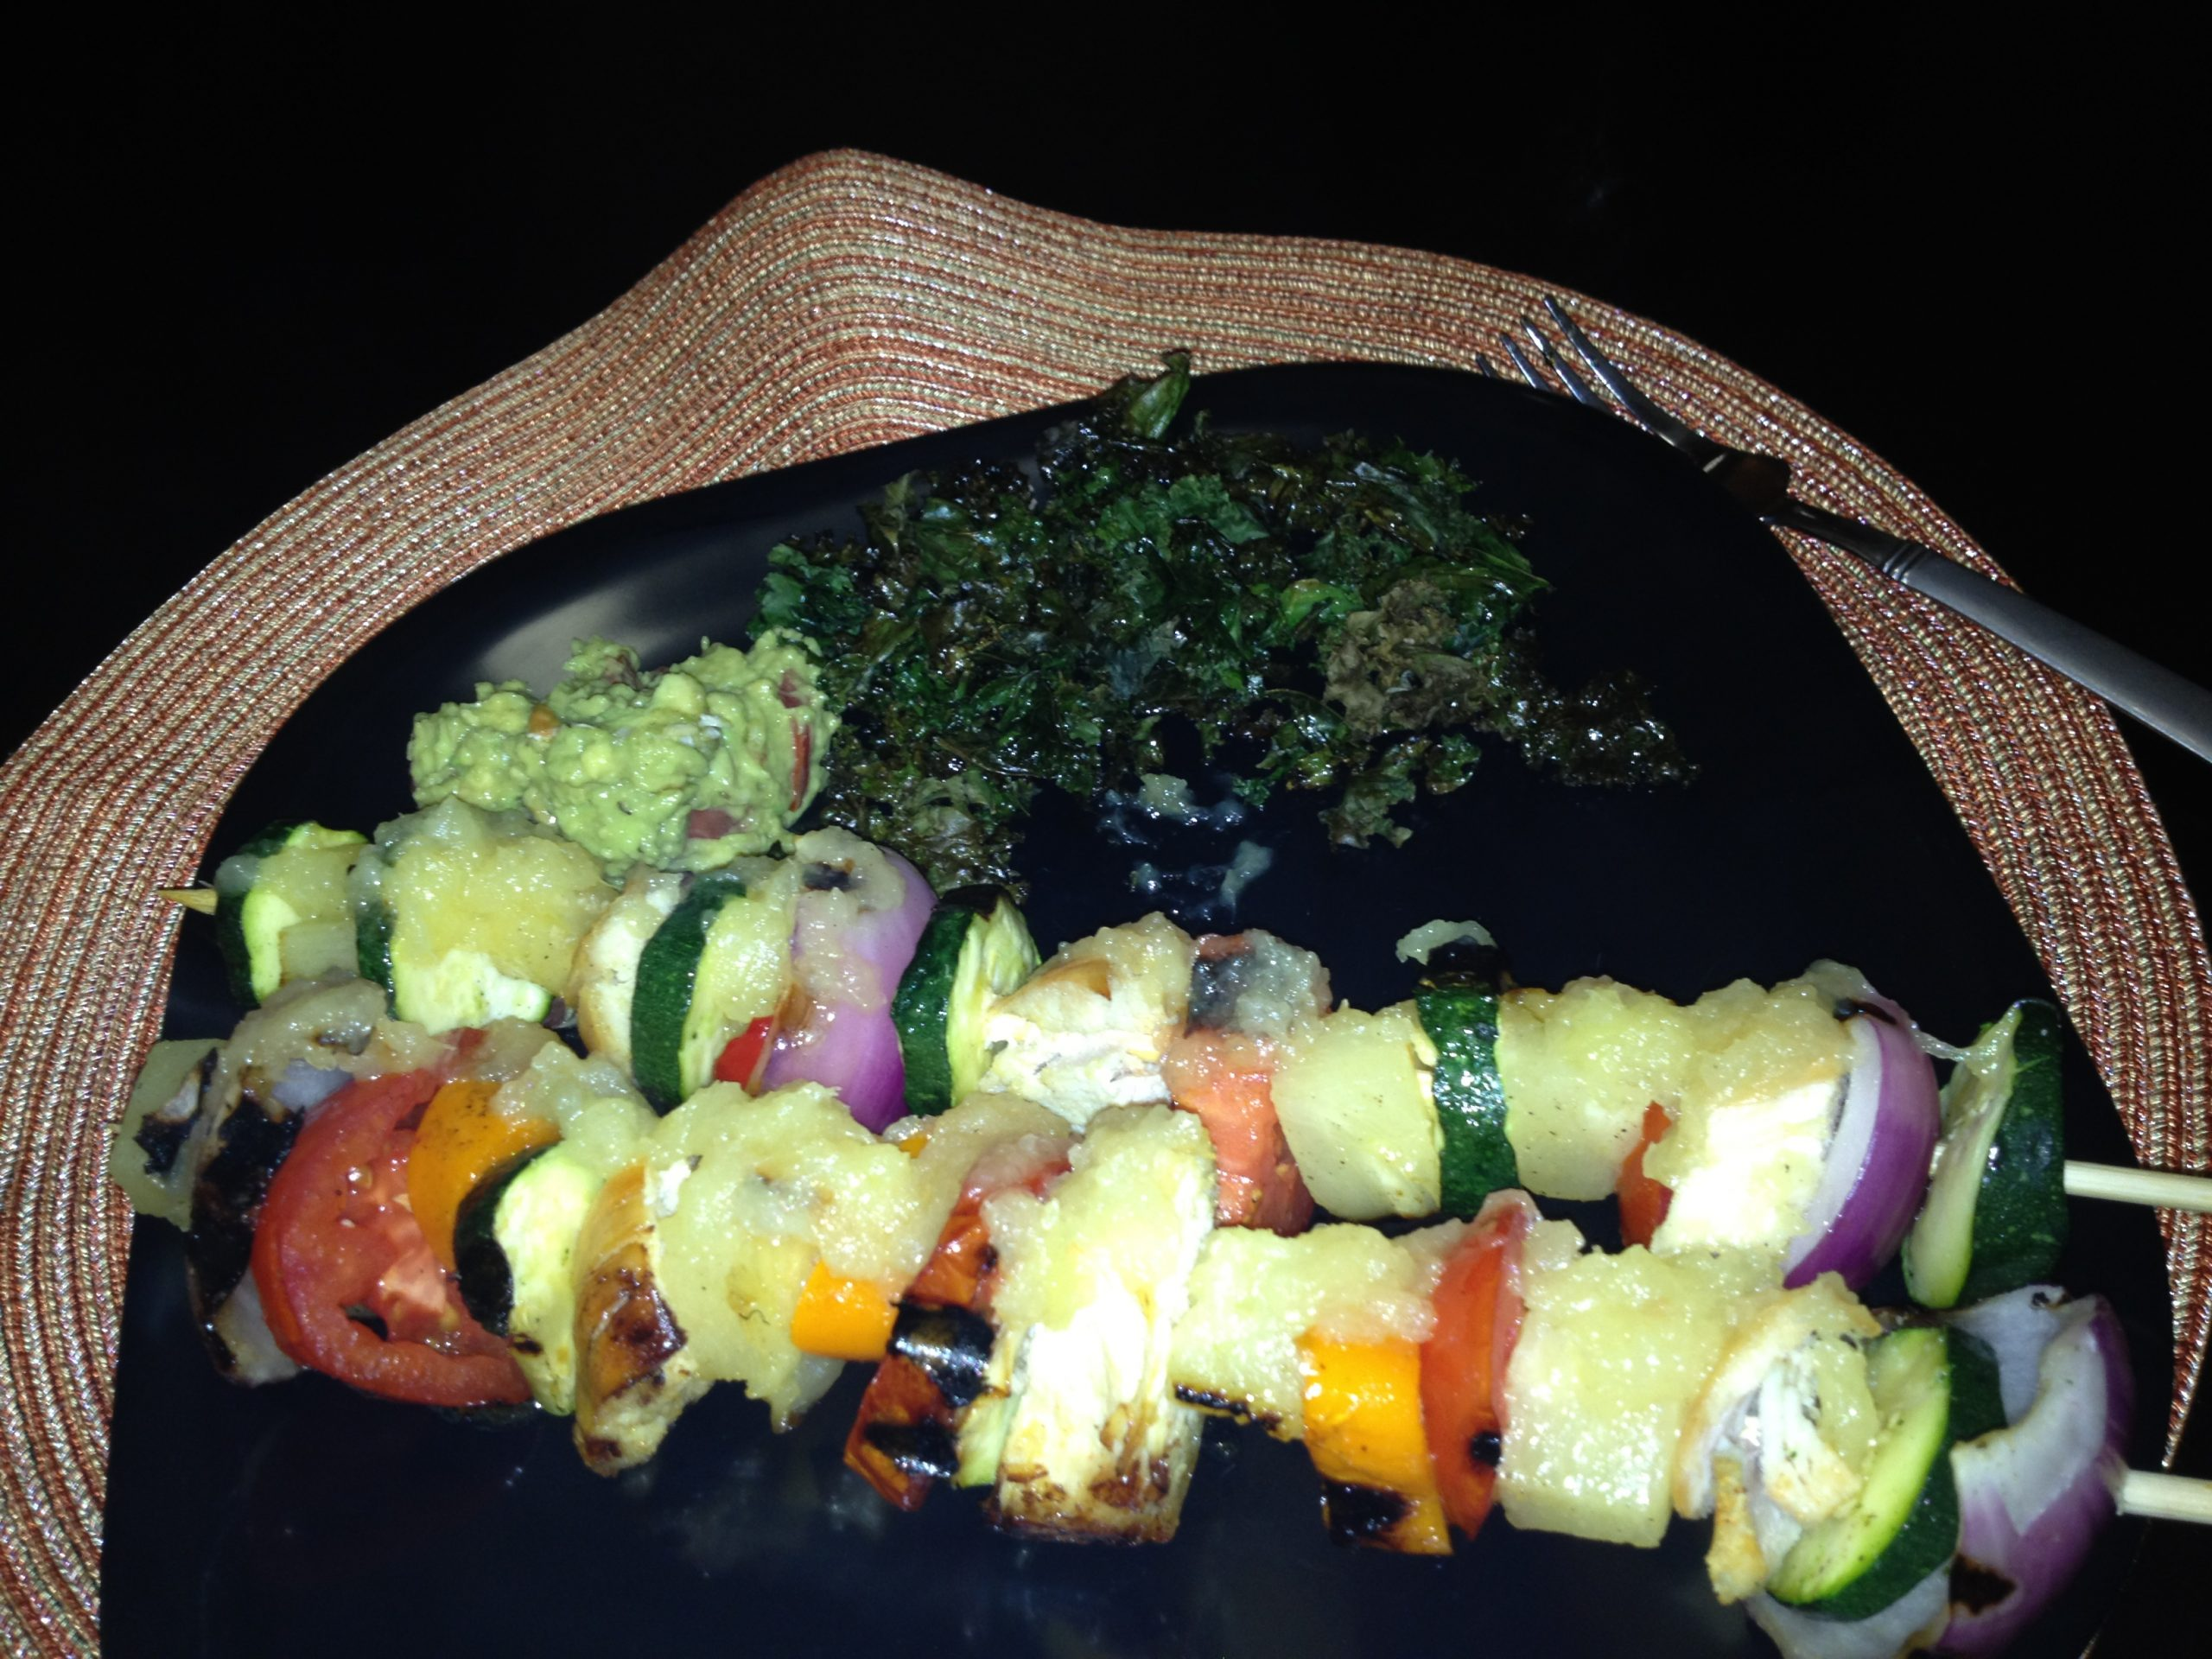 Pineapple Glazed Chicken Kabobs with a side of Kale Chips and Guacamole